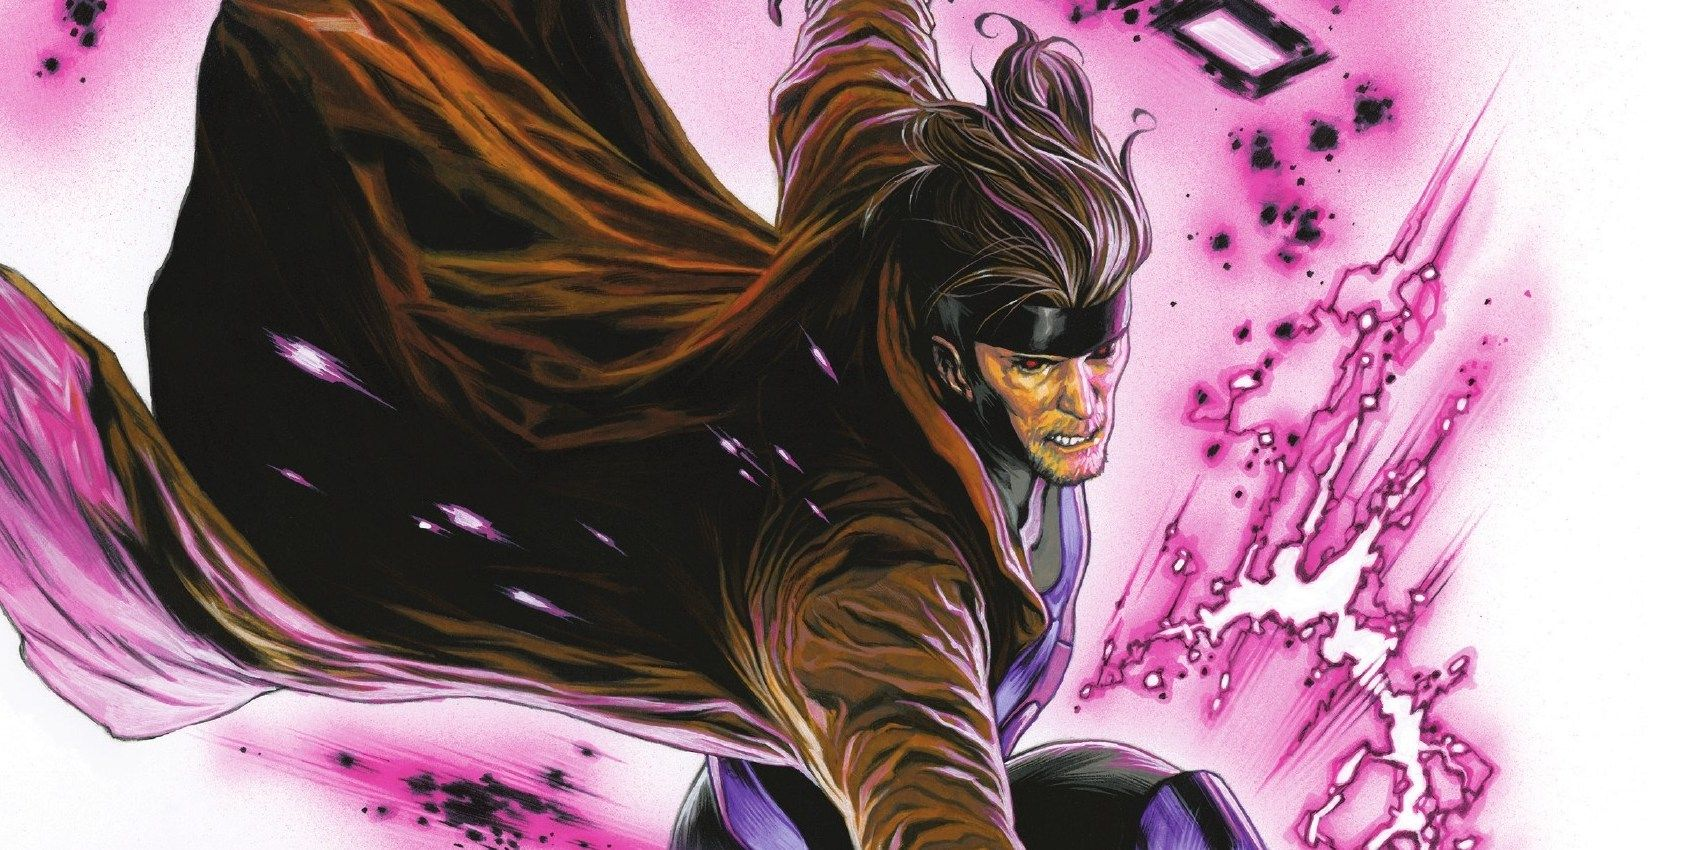 Rupert Wyatt's Gambit Movie Would've Taken Cues From The Godfather